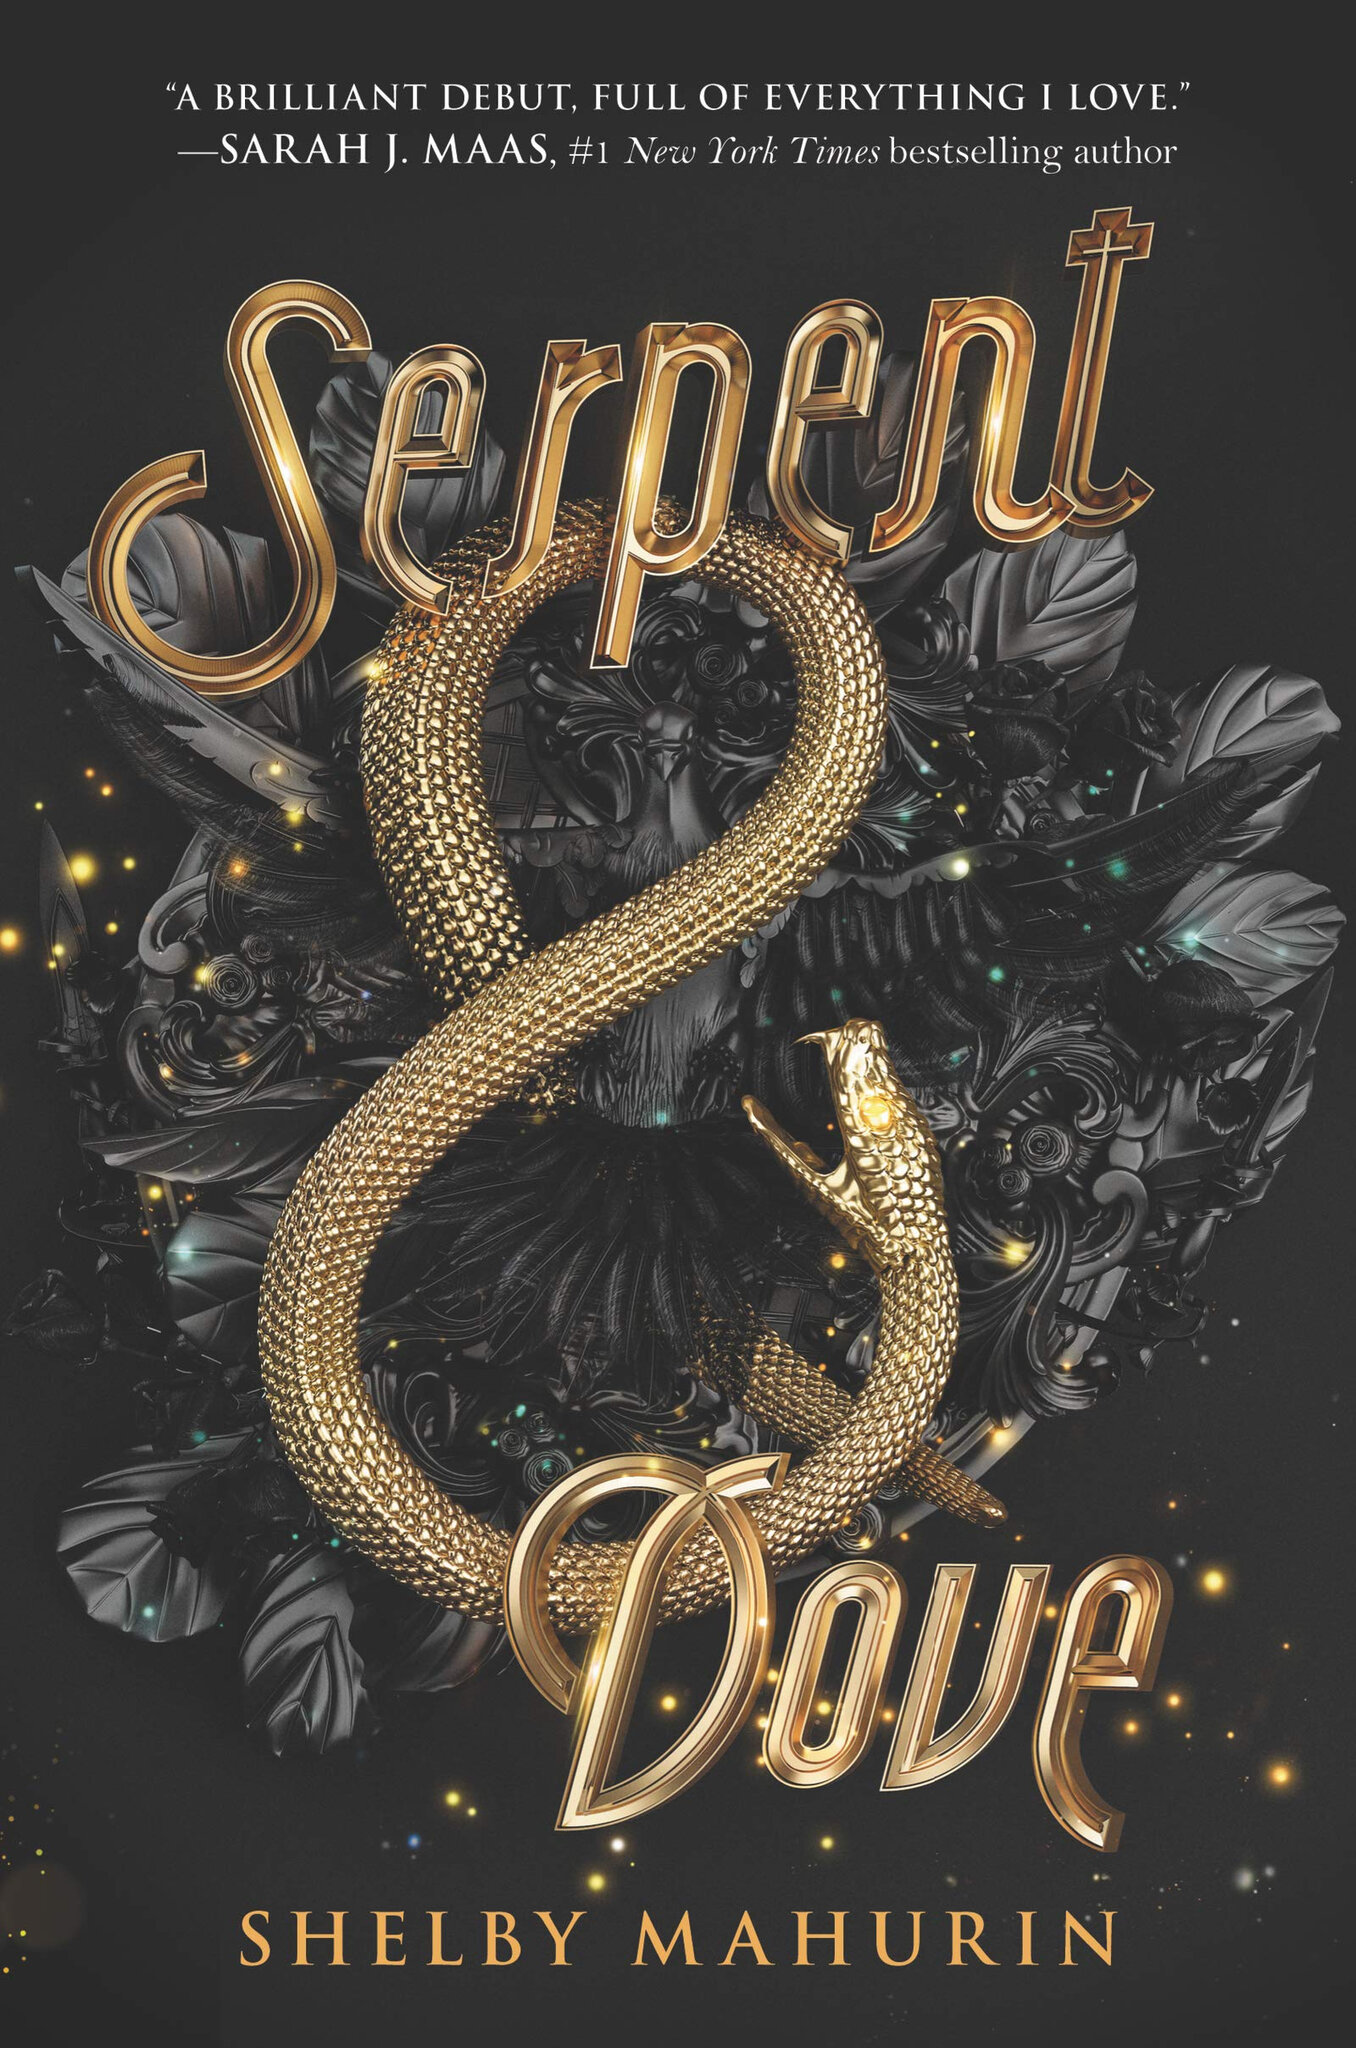 Serpent & Dove#1, Shelby Mahurin